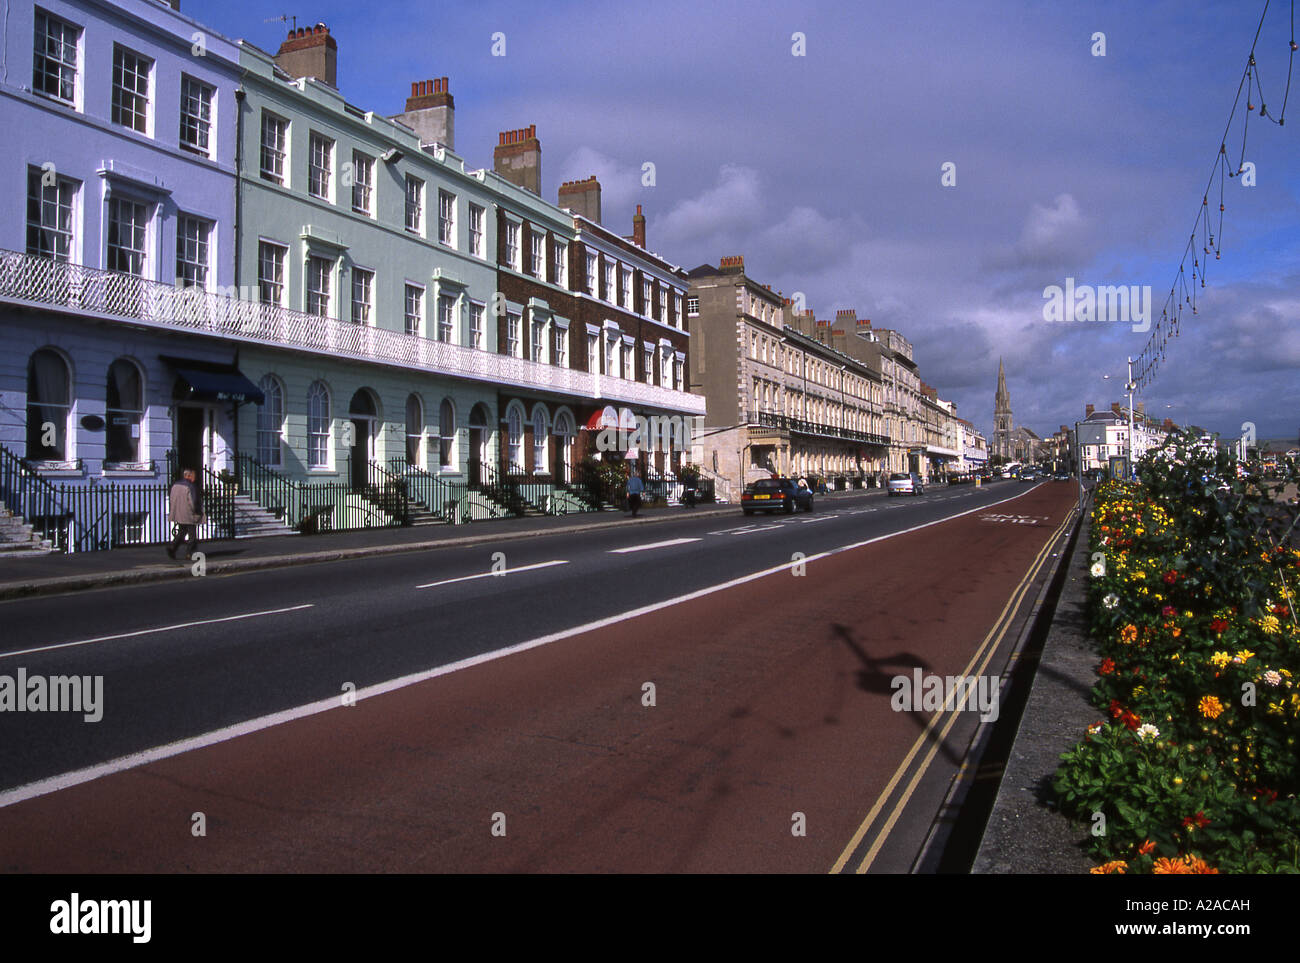 Georgian terraced houses along the sea front at Weymouth, Dorset. - Stock Image